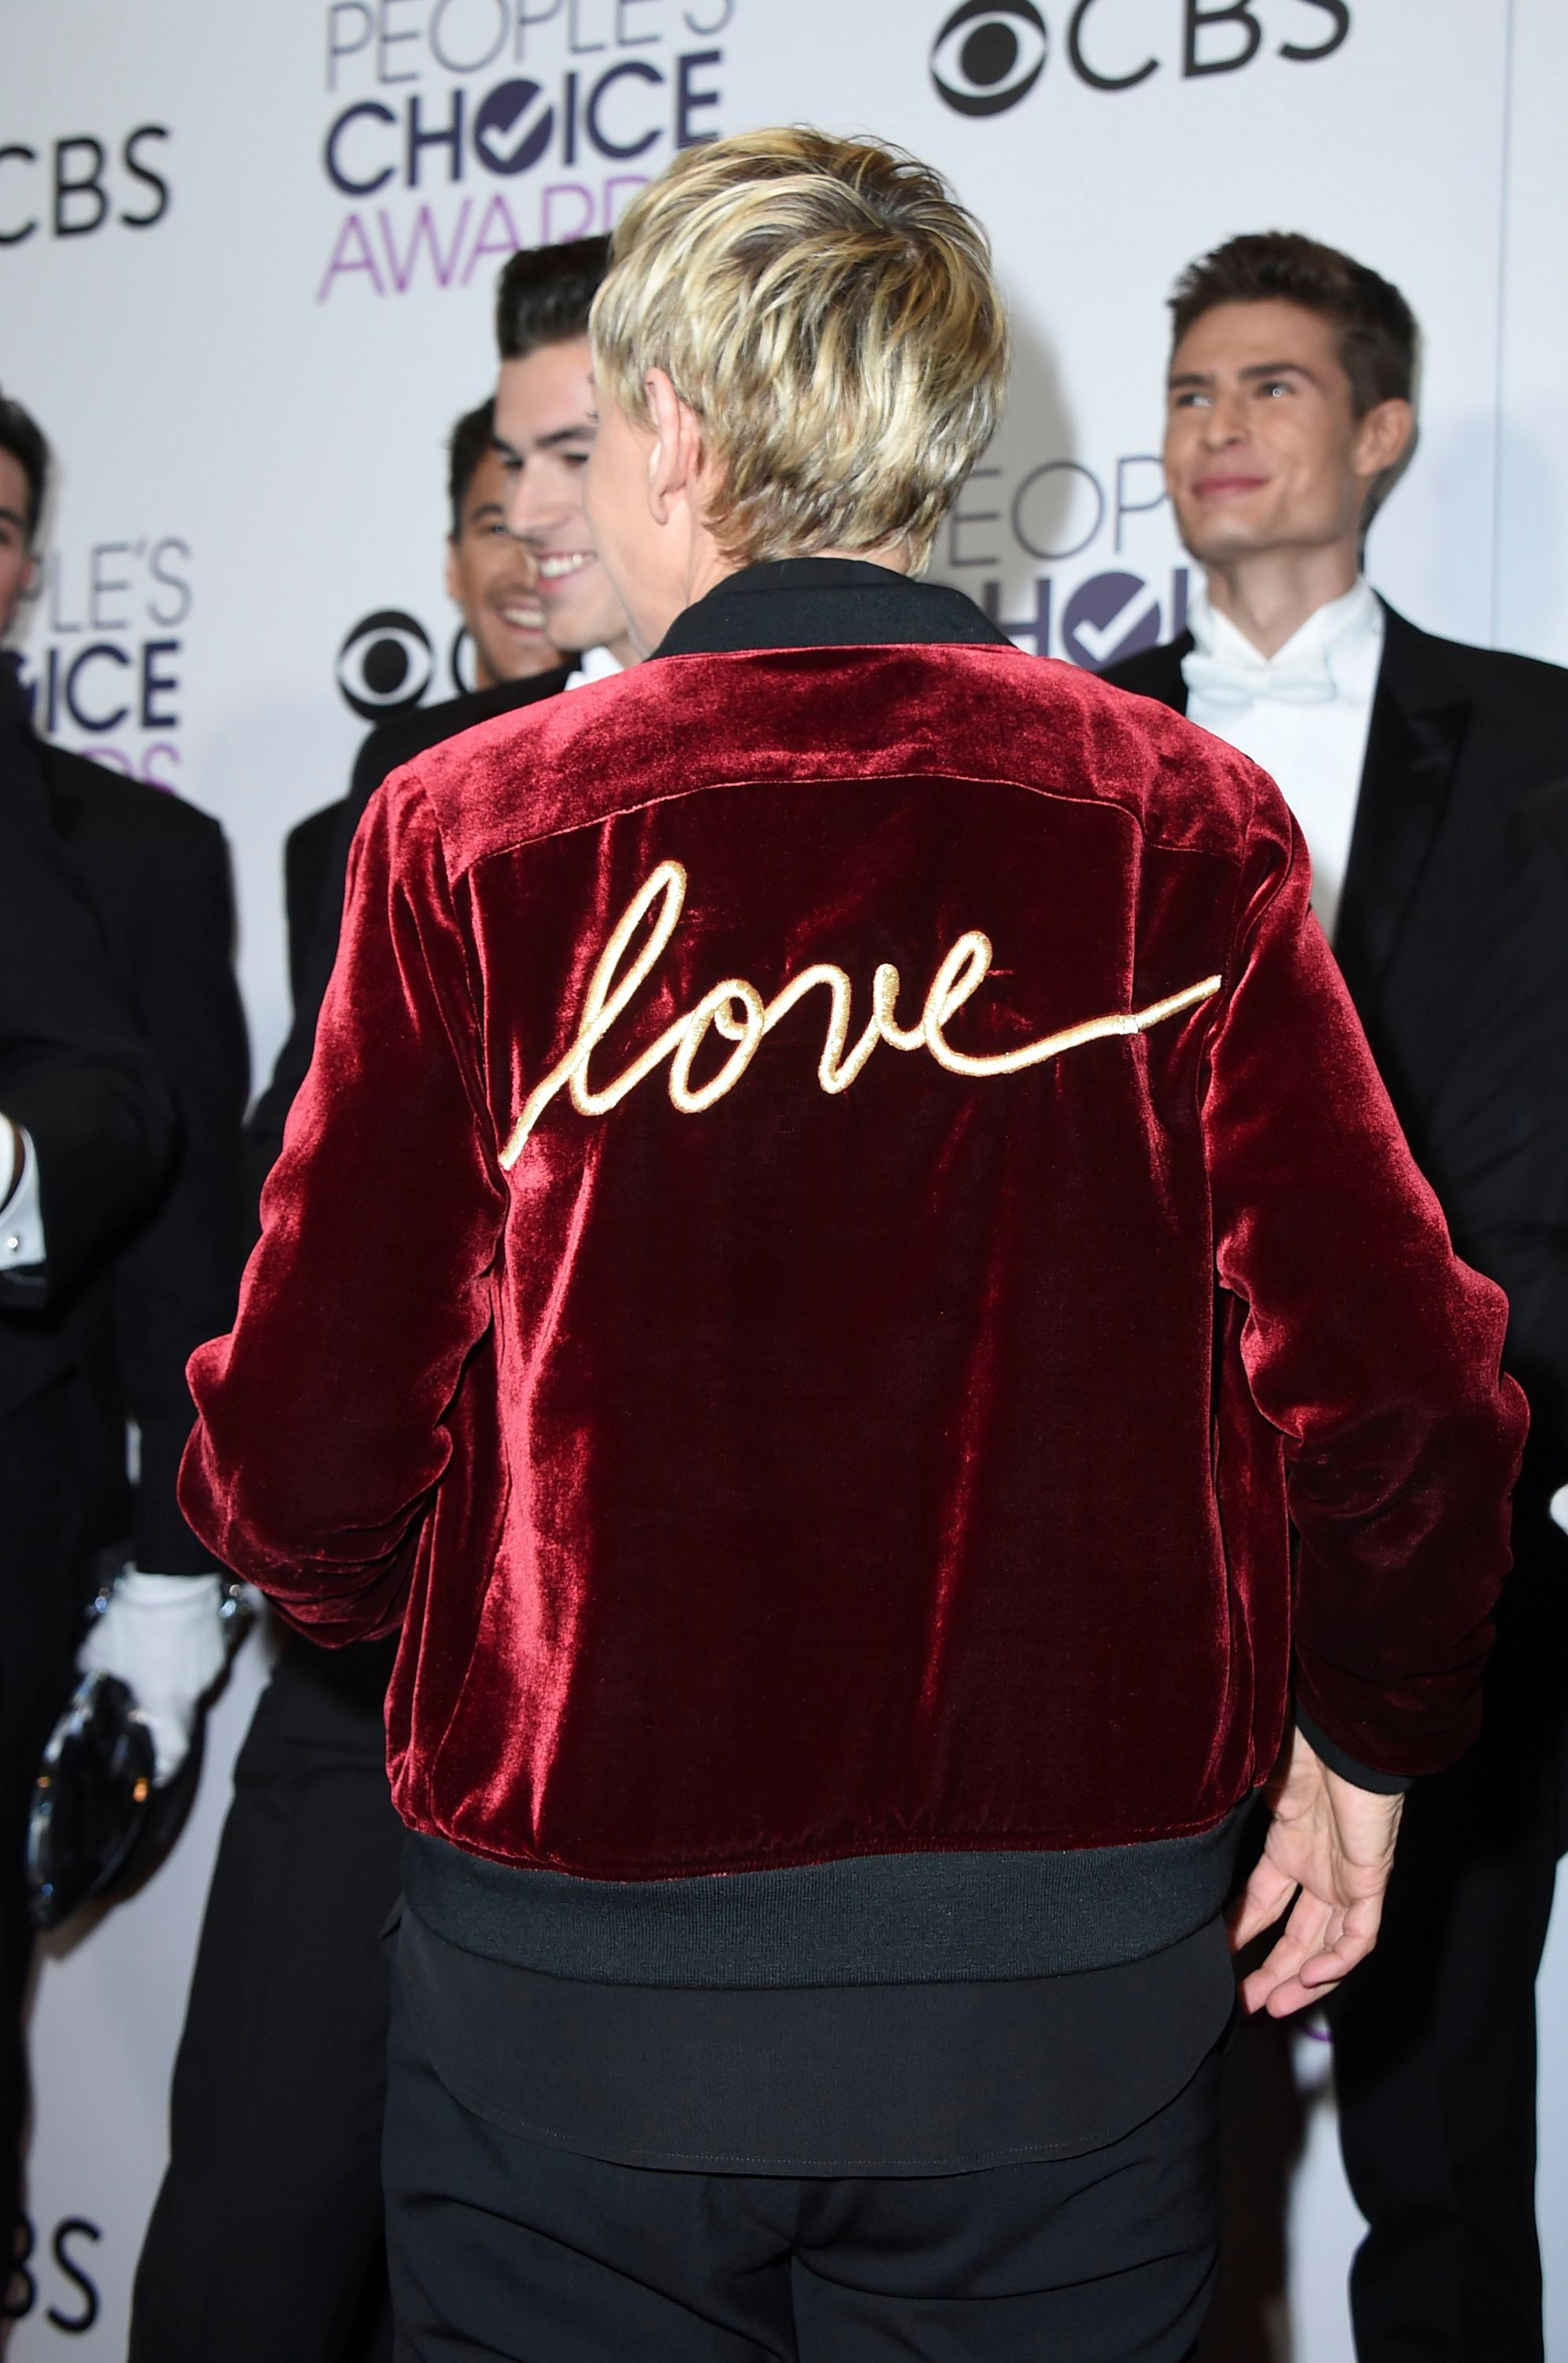 DeGeneres' adorns her brand's Love Varsity Jacket at the People's Choice Awards 2017 in Los Angeles, California. (Photo: Shutterstock)